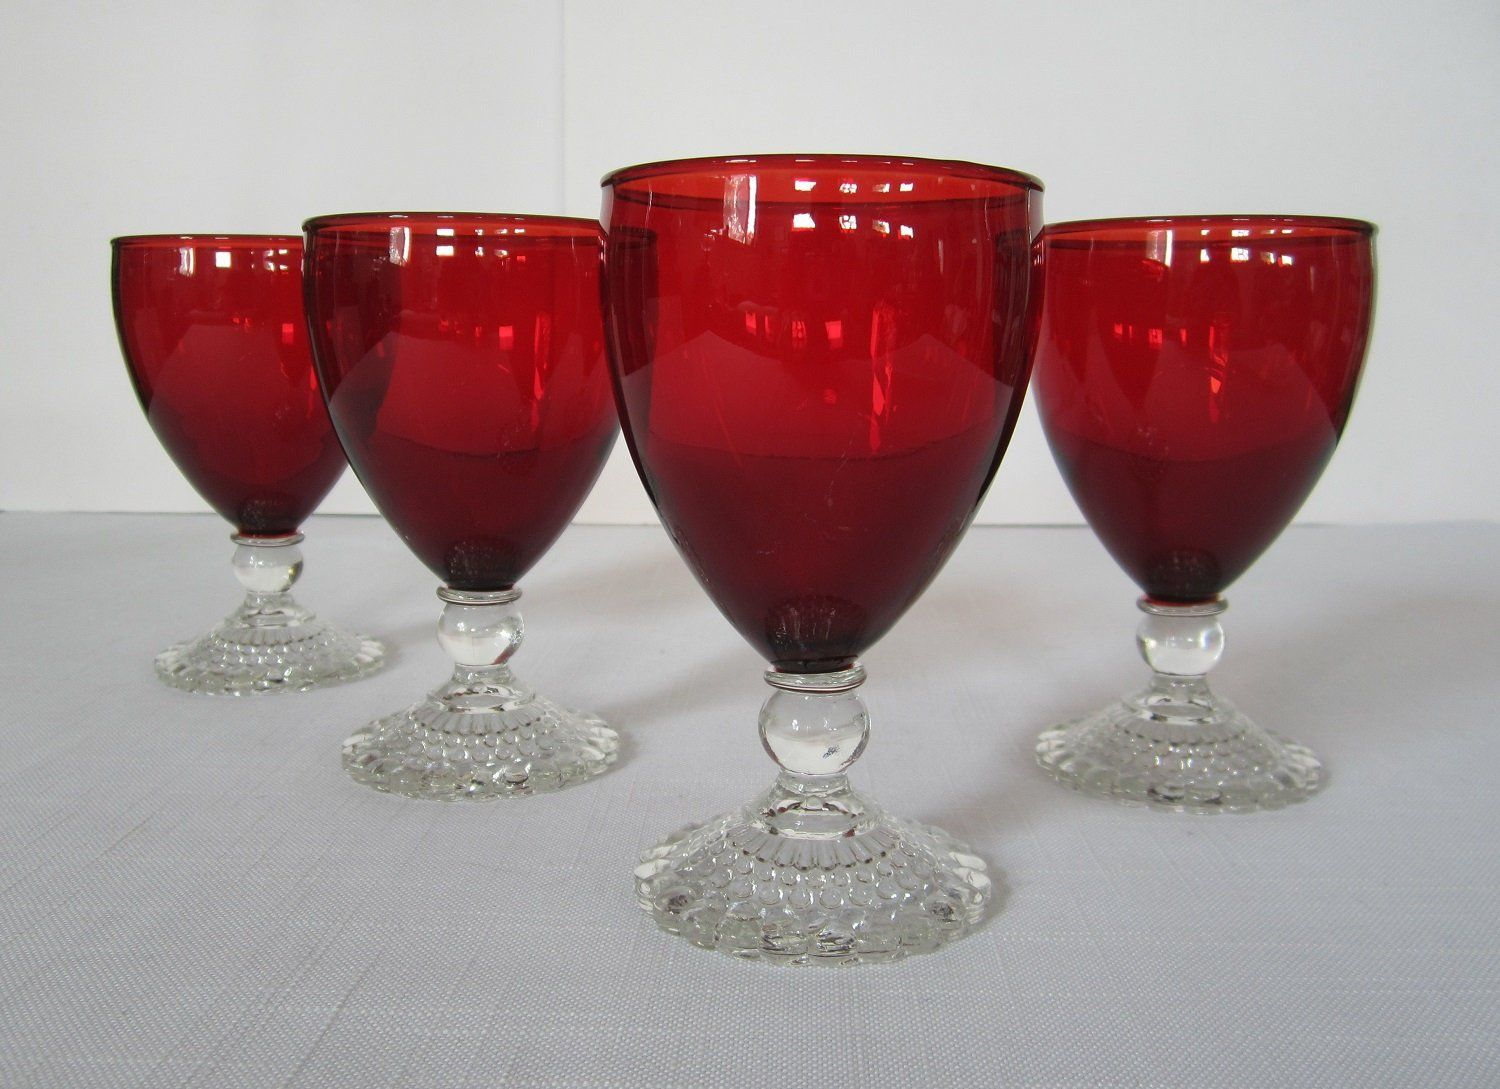 Anchor Hocking 4 Pc Bubble Foot Ruby Red Water Glass Set Vintage Midcentury 9 Oz Footed Goblets Clear Ball Stem And Beaded Hollo Glass Set Red Glasses Red Bowl